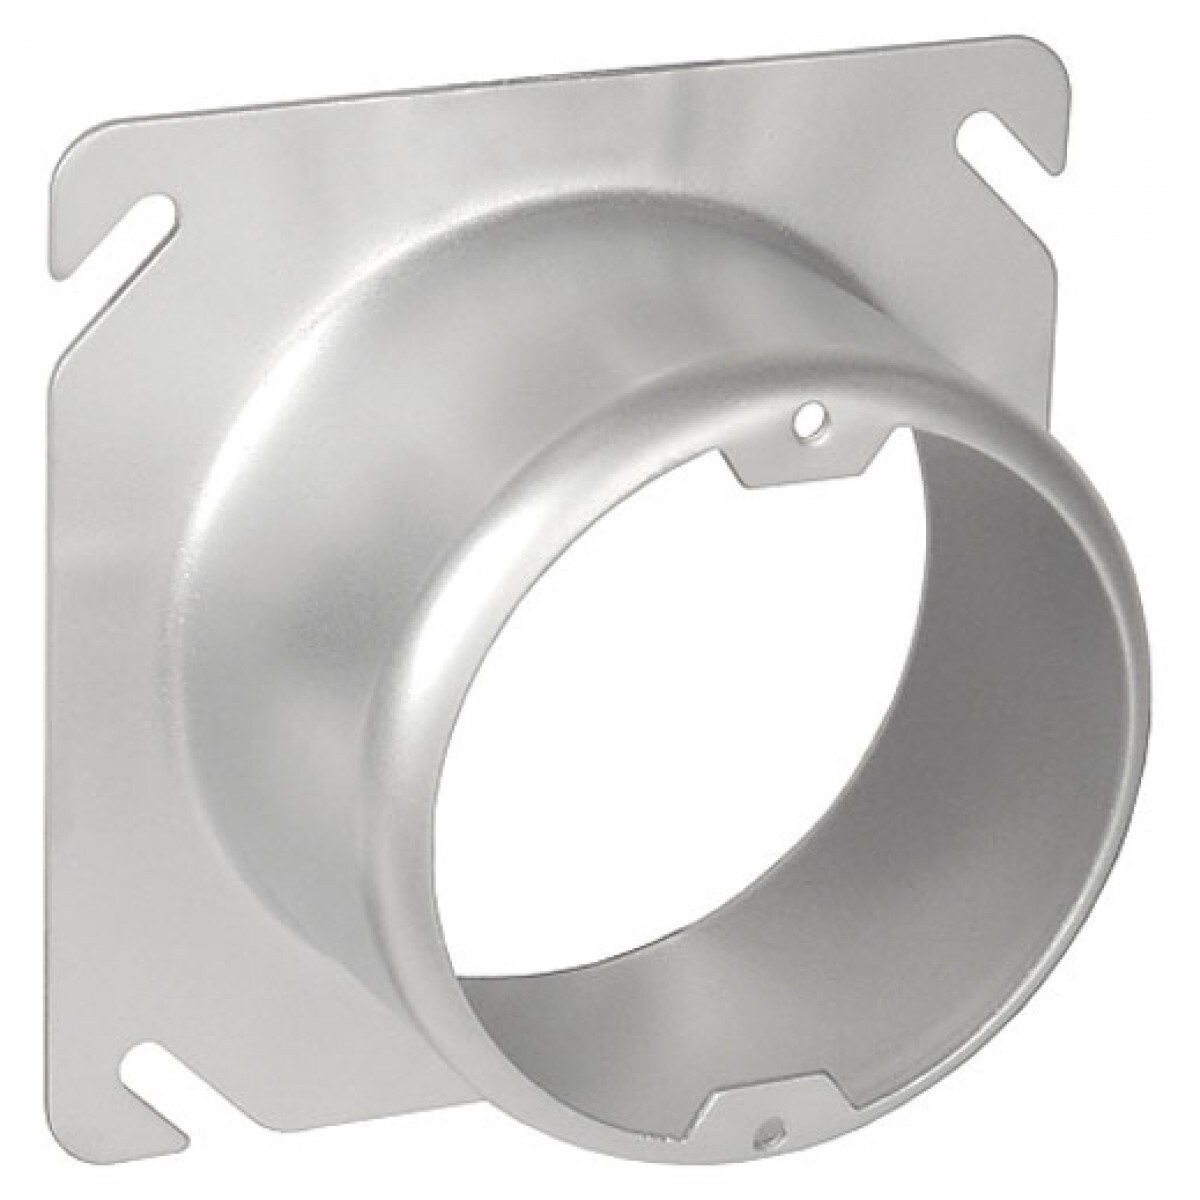 1 Pc, 4 Square to Round Device Ring, 2 in. Raised, .0625 Galvanized Steel